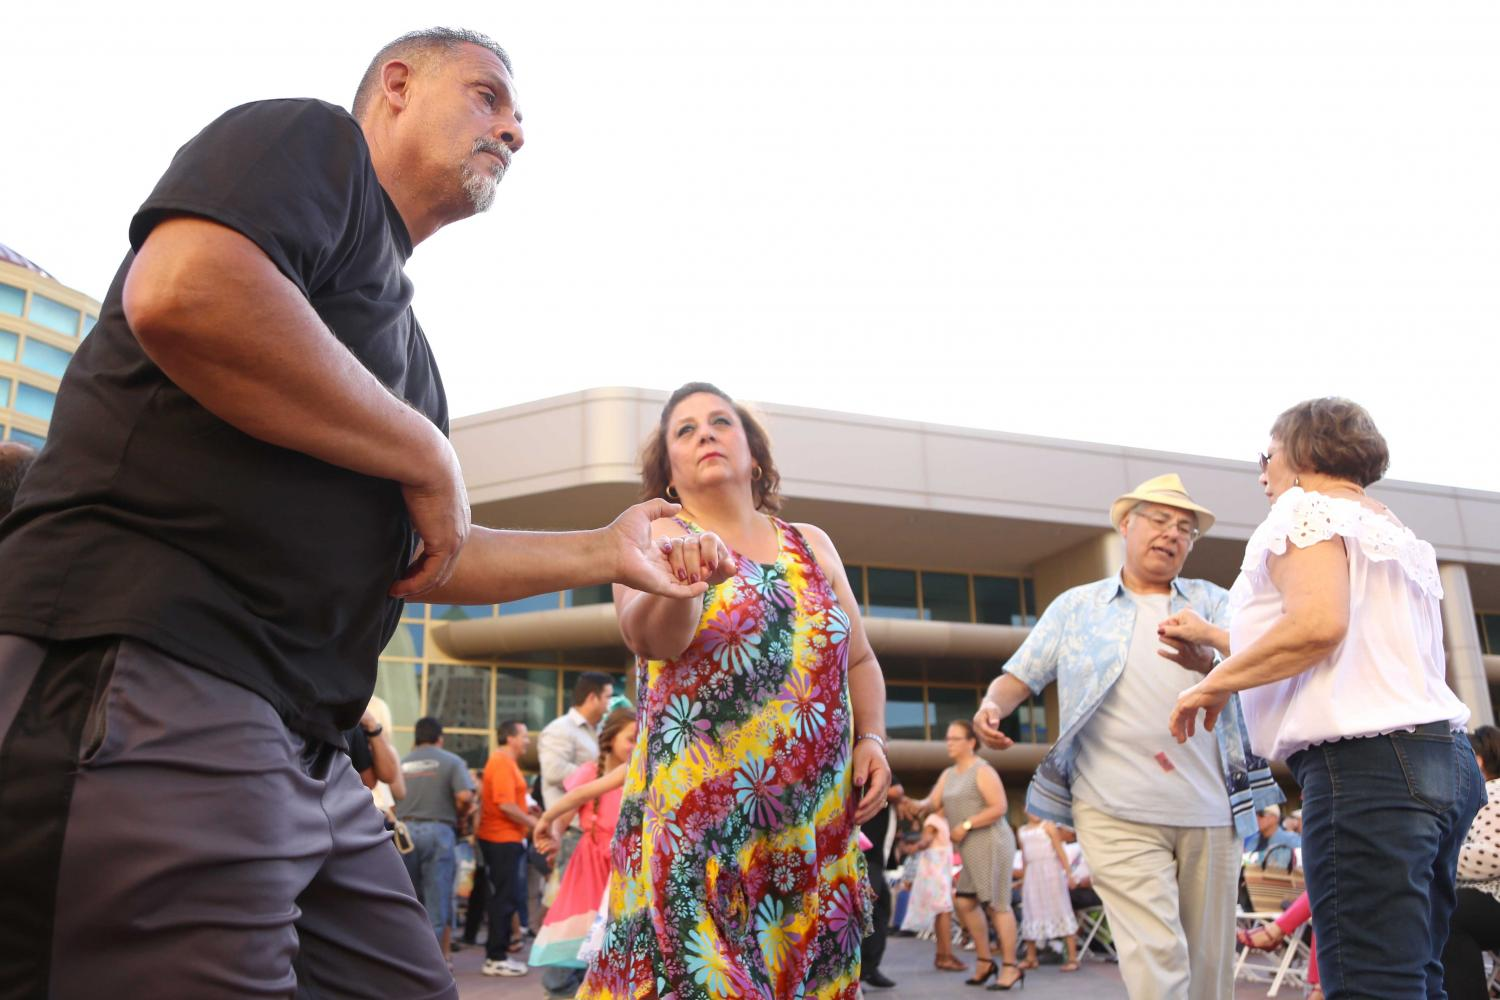 Two couples dance to the music at the Civic Center Plaza on Friday, June 2.